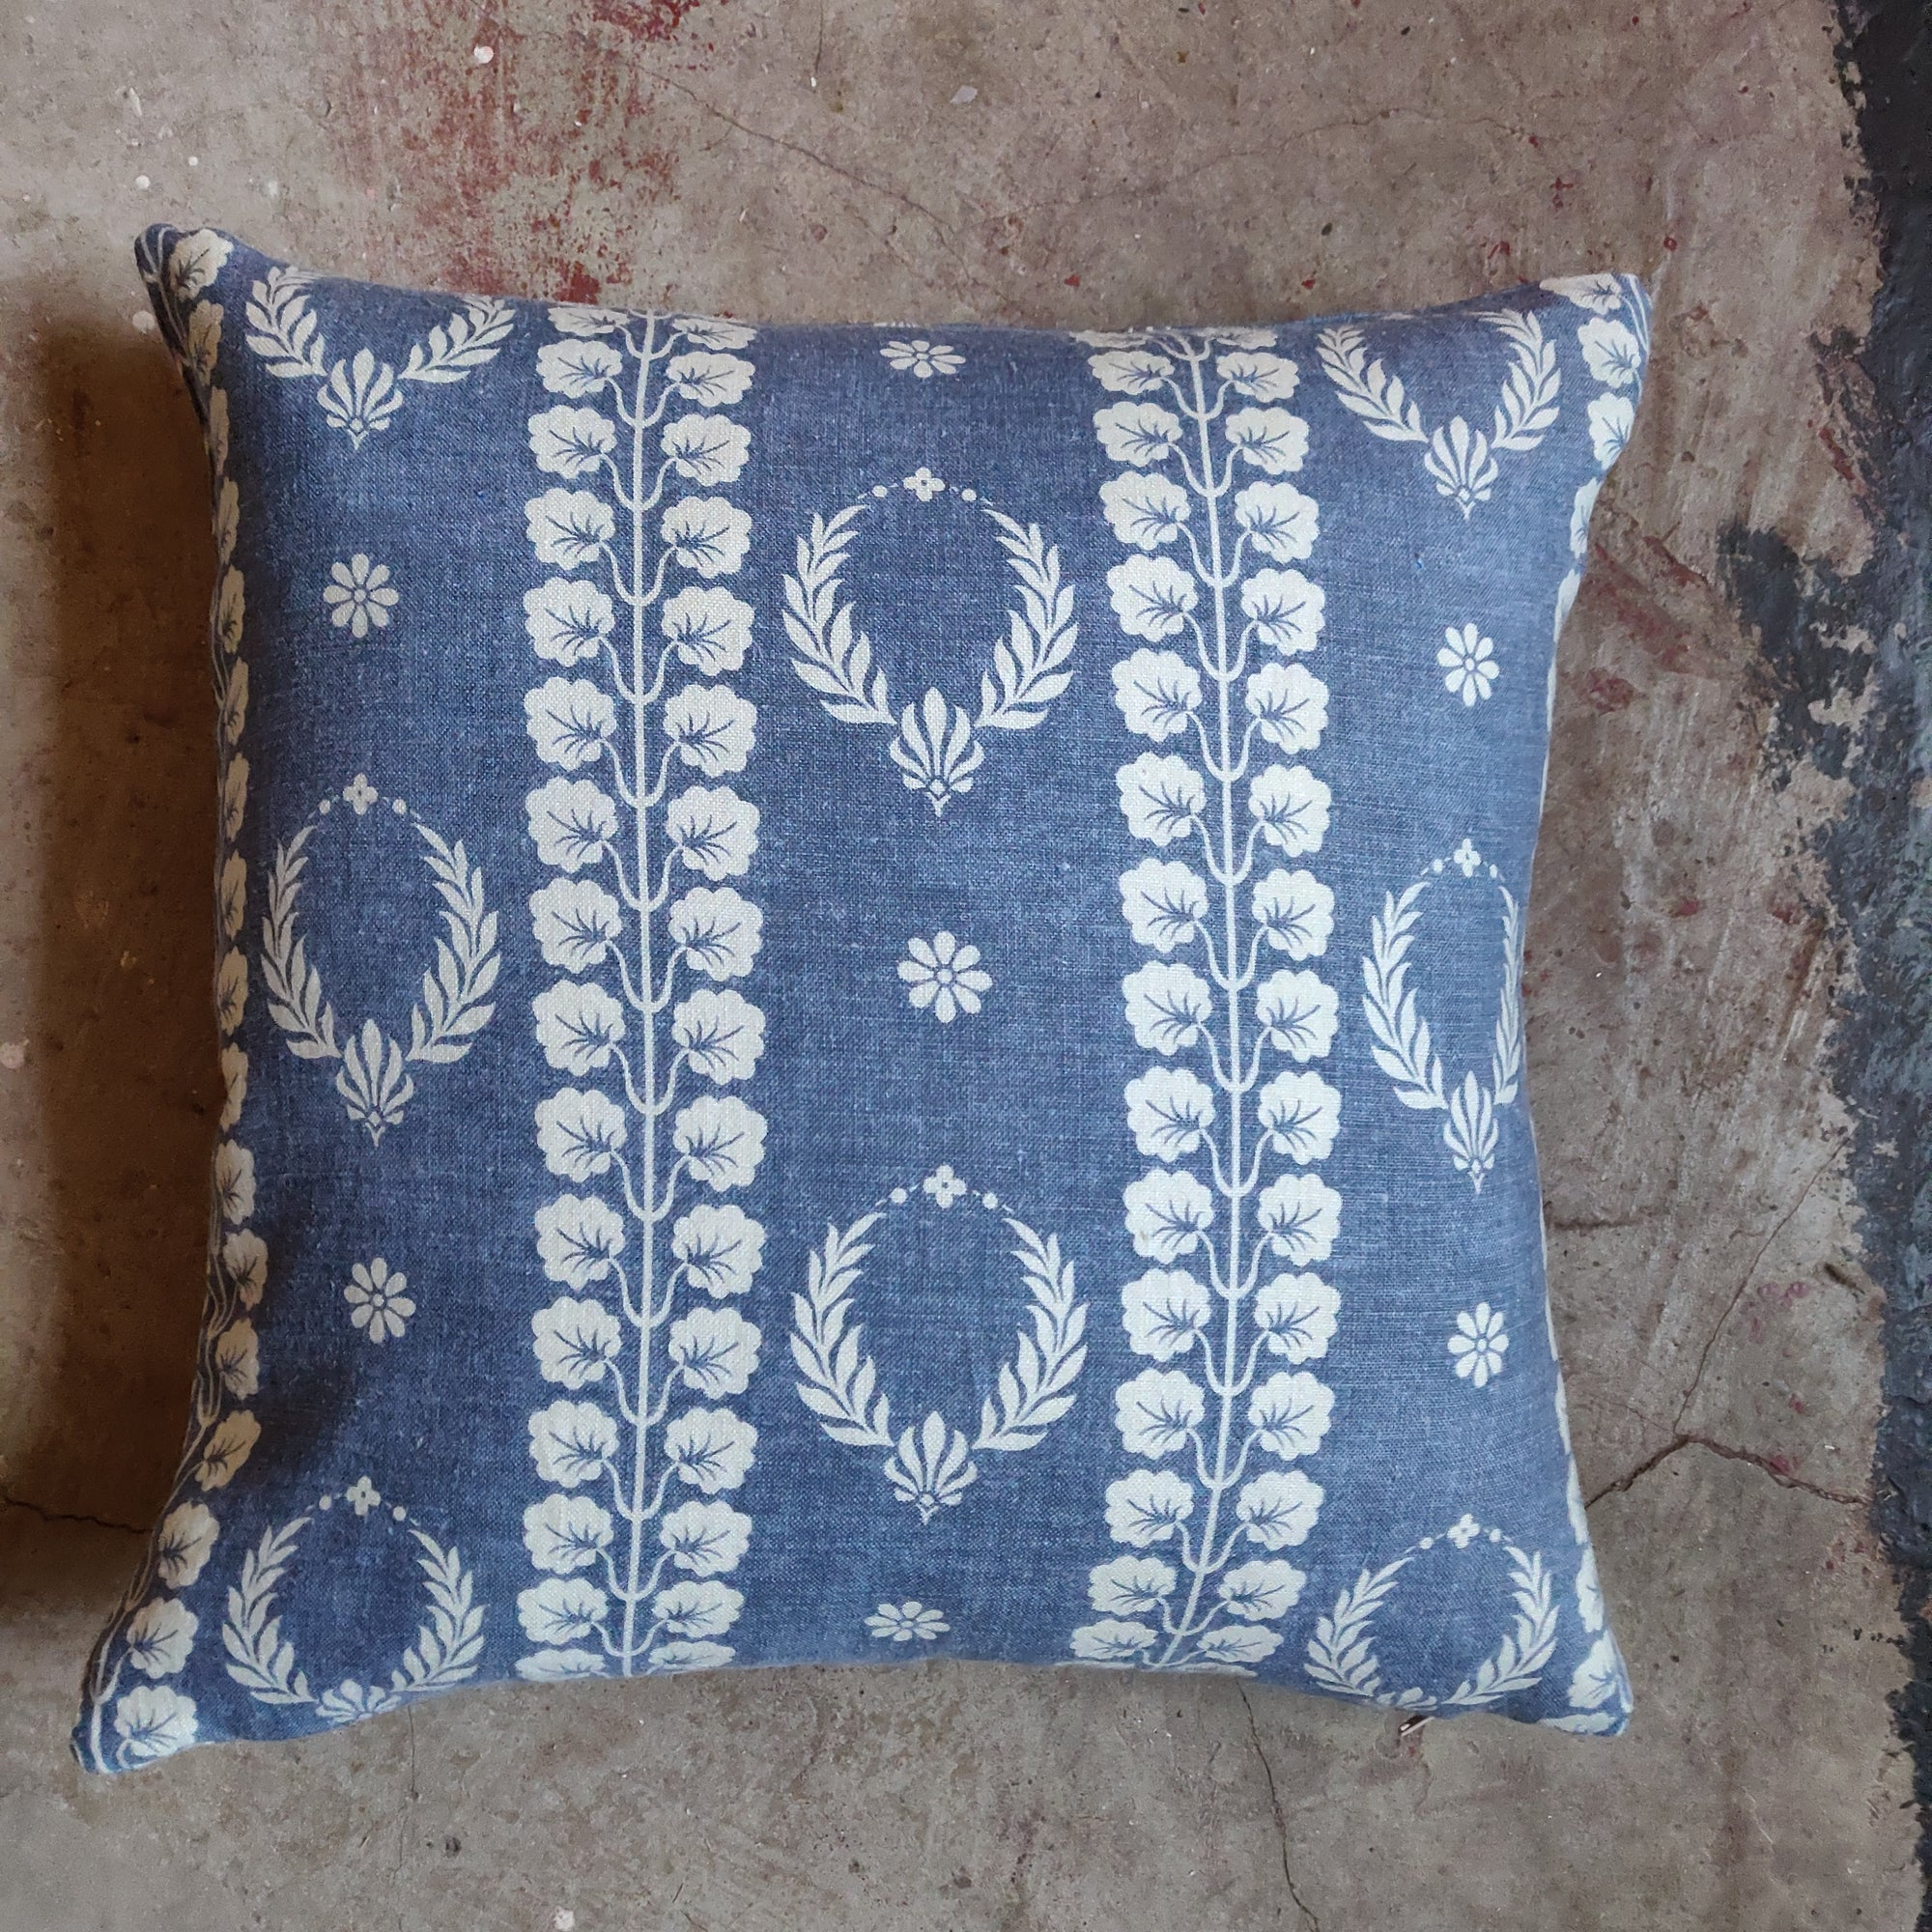 45cm Square Linen Cushion / Couronne Marine Blue